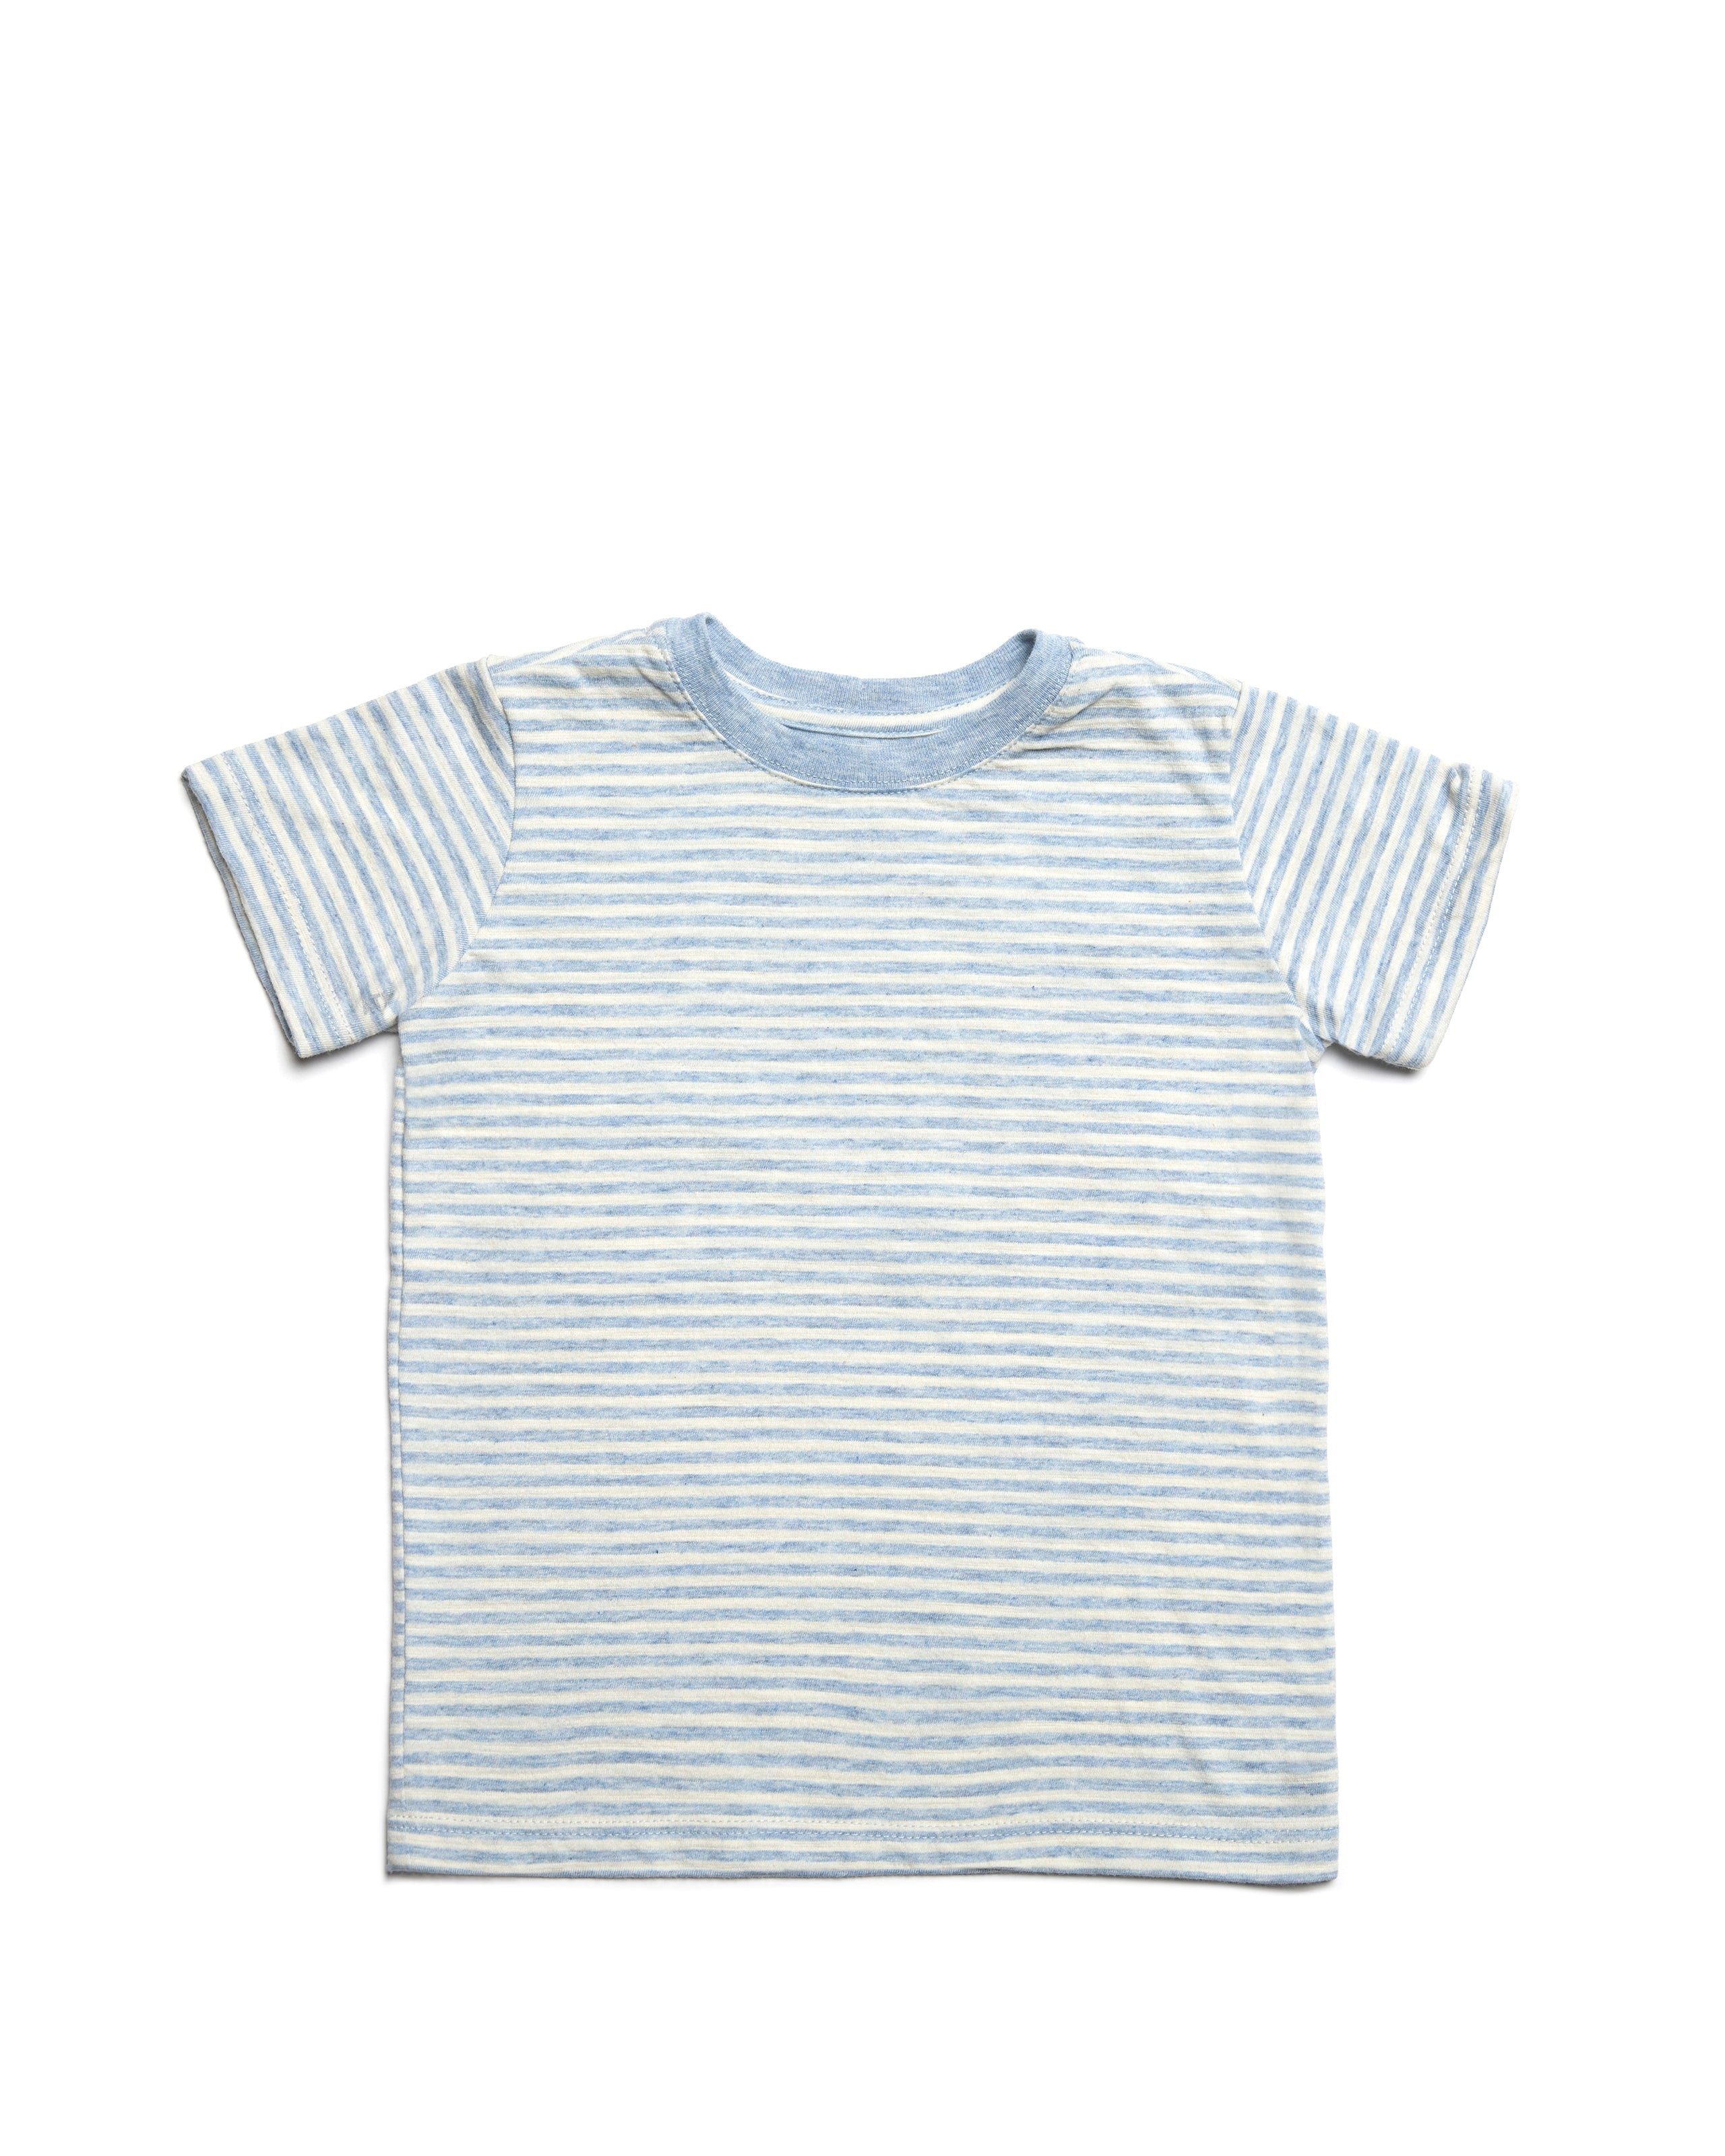 ATM Kids Striped Slub Jersey Short Sleeve Tee